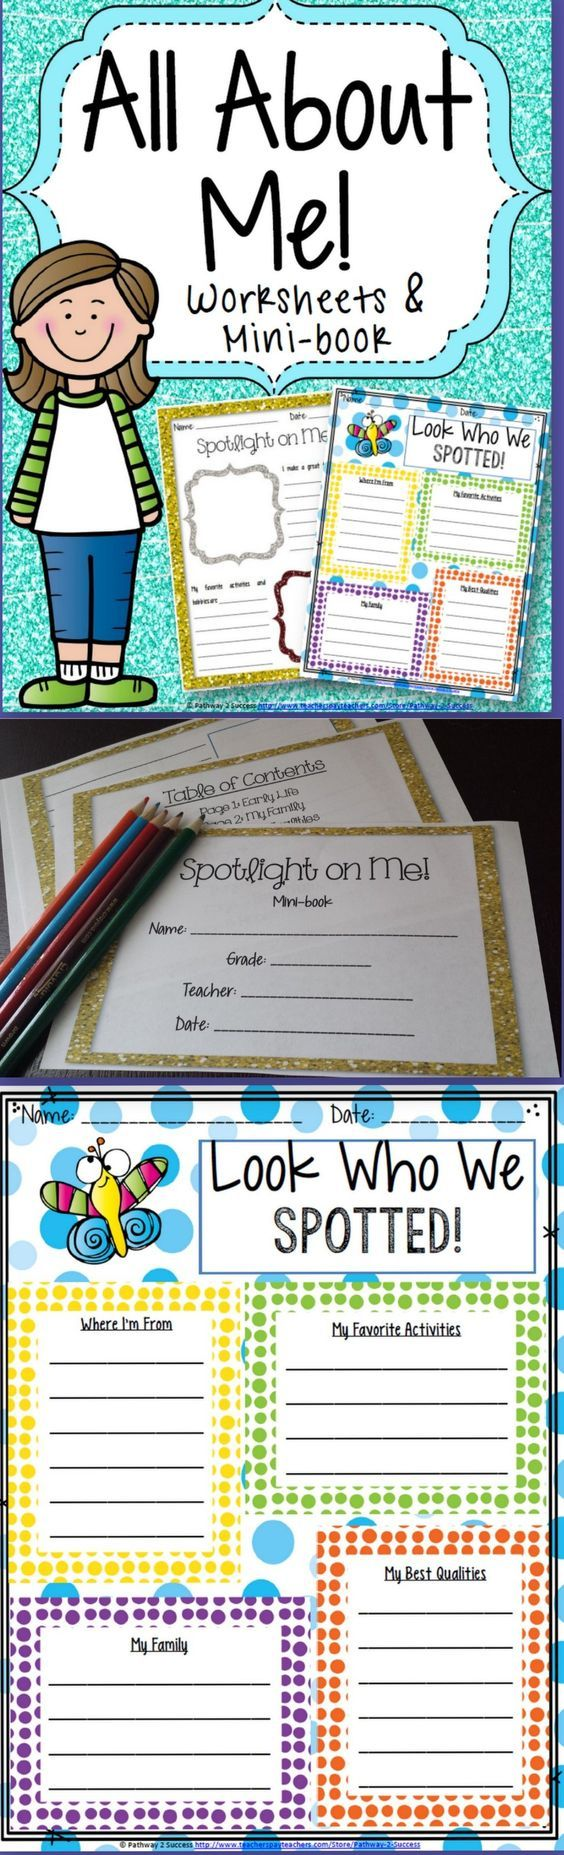 All About Me - Back to School Worksheets & Mini-Book